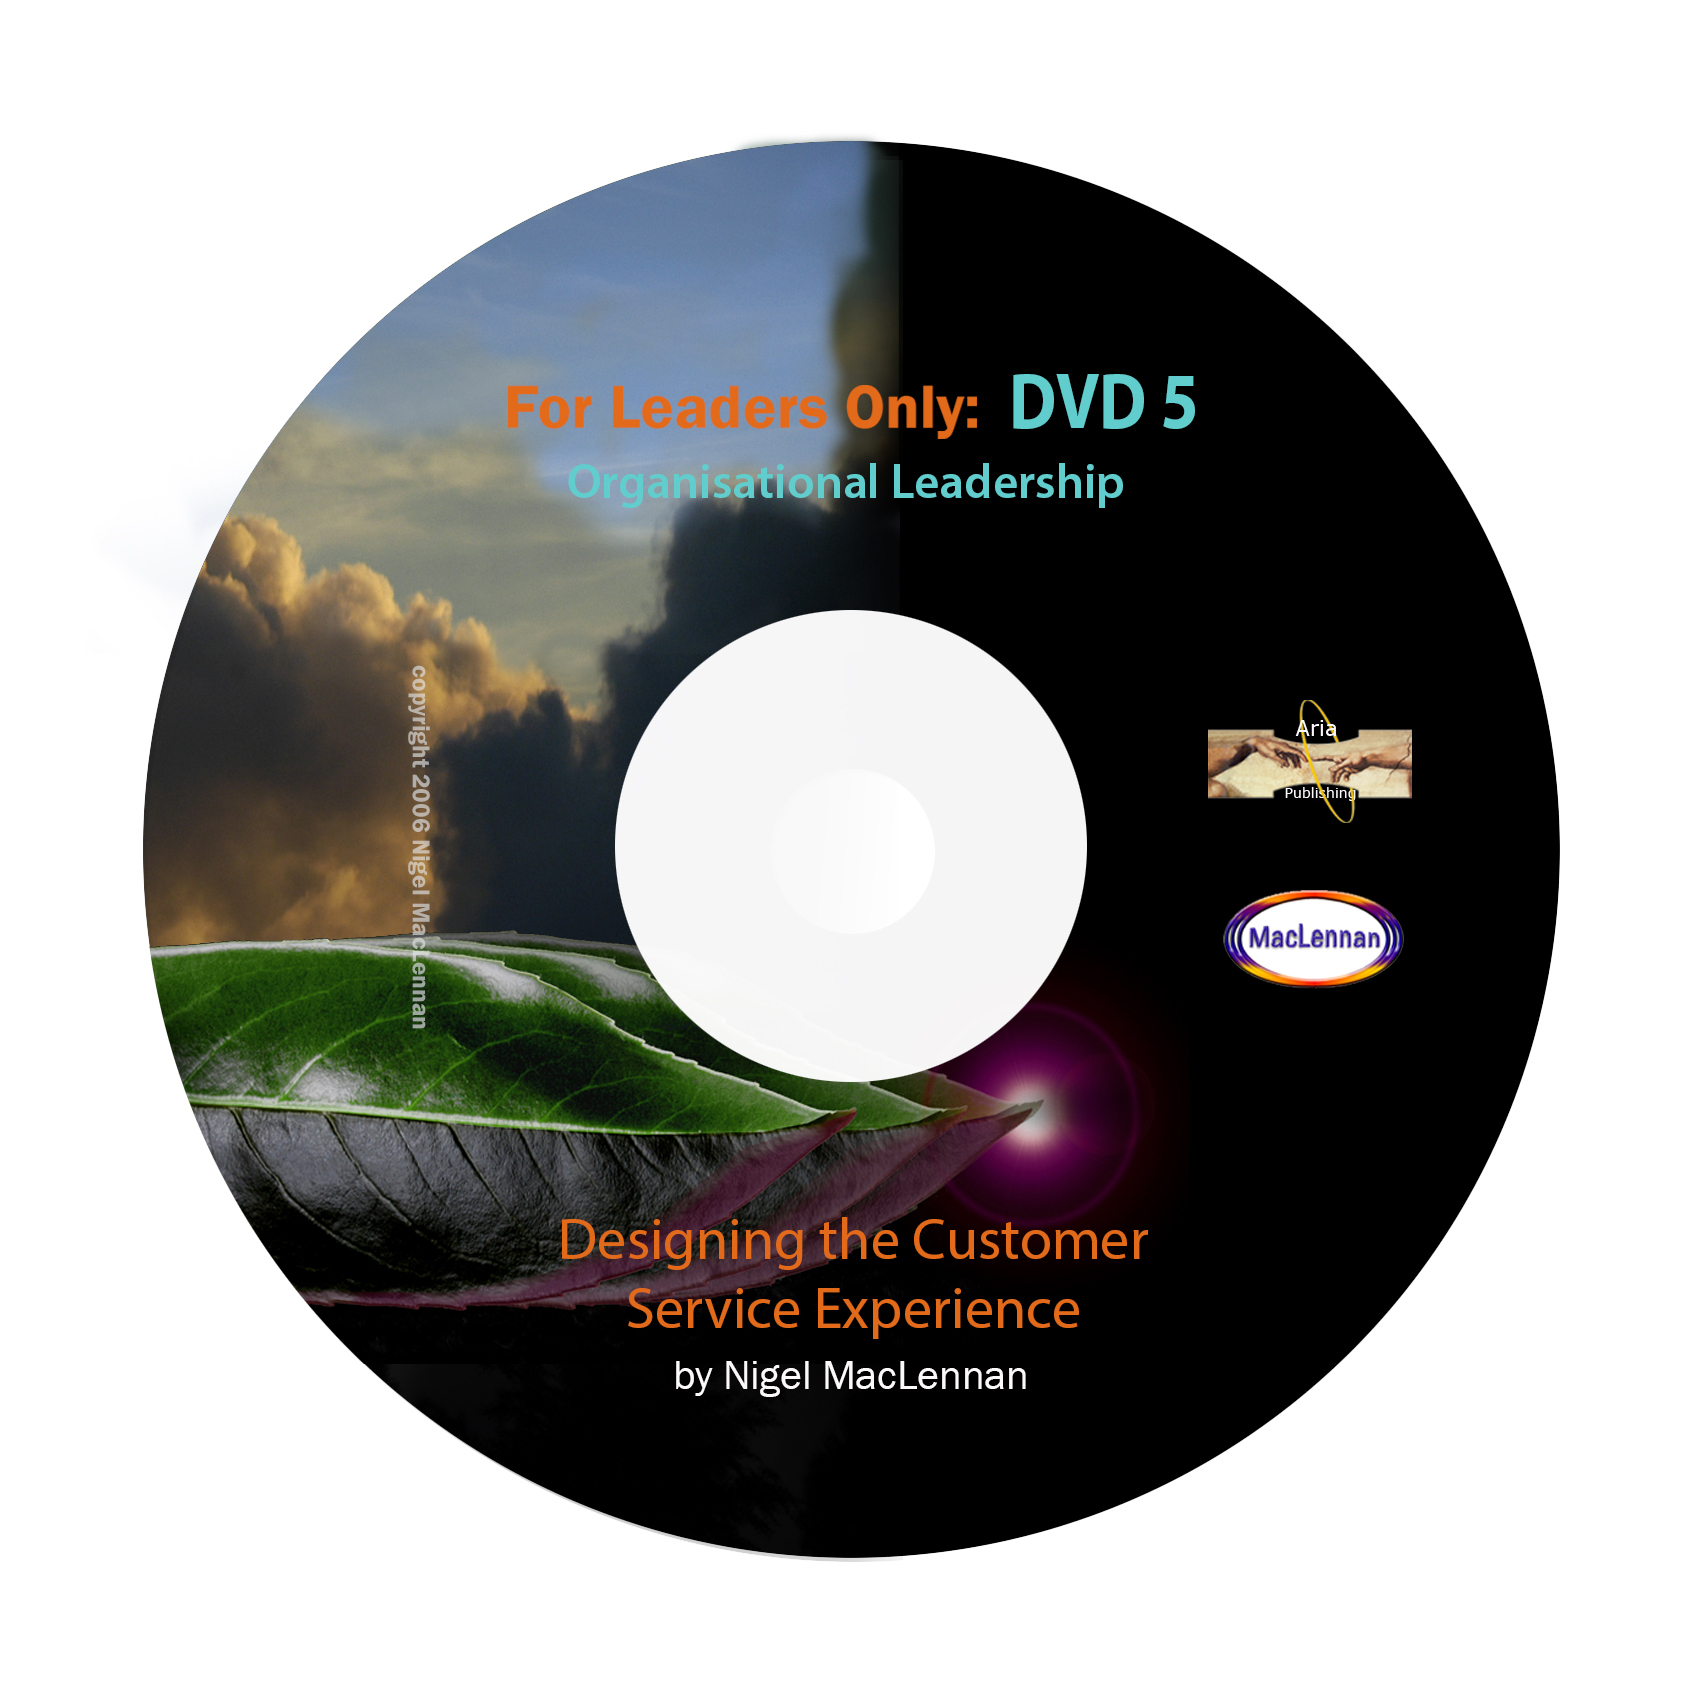 For Leaders Only - Designing the Customer Service Experience DVD